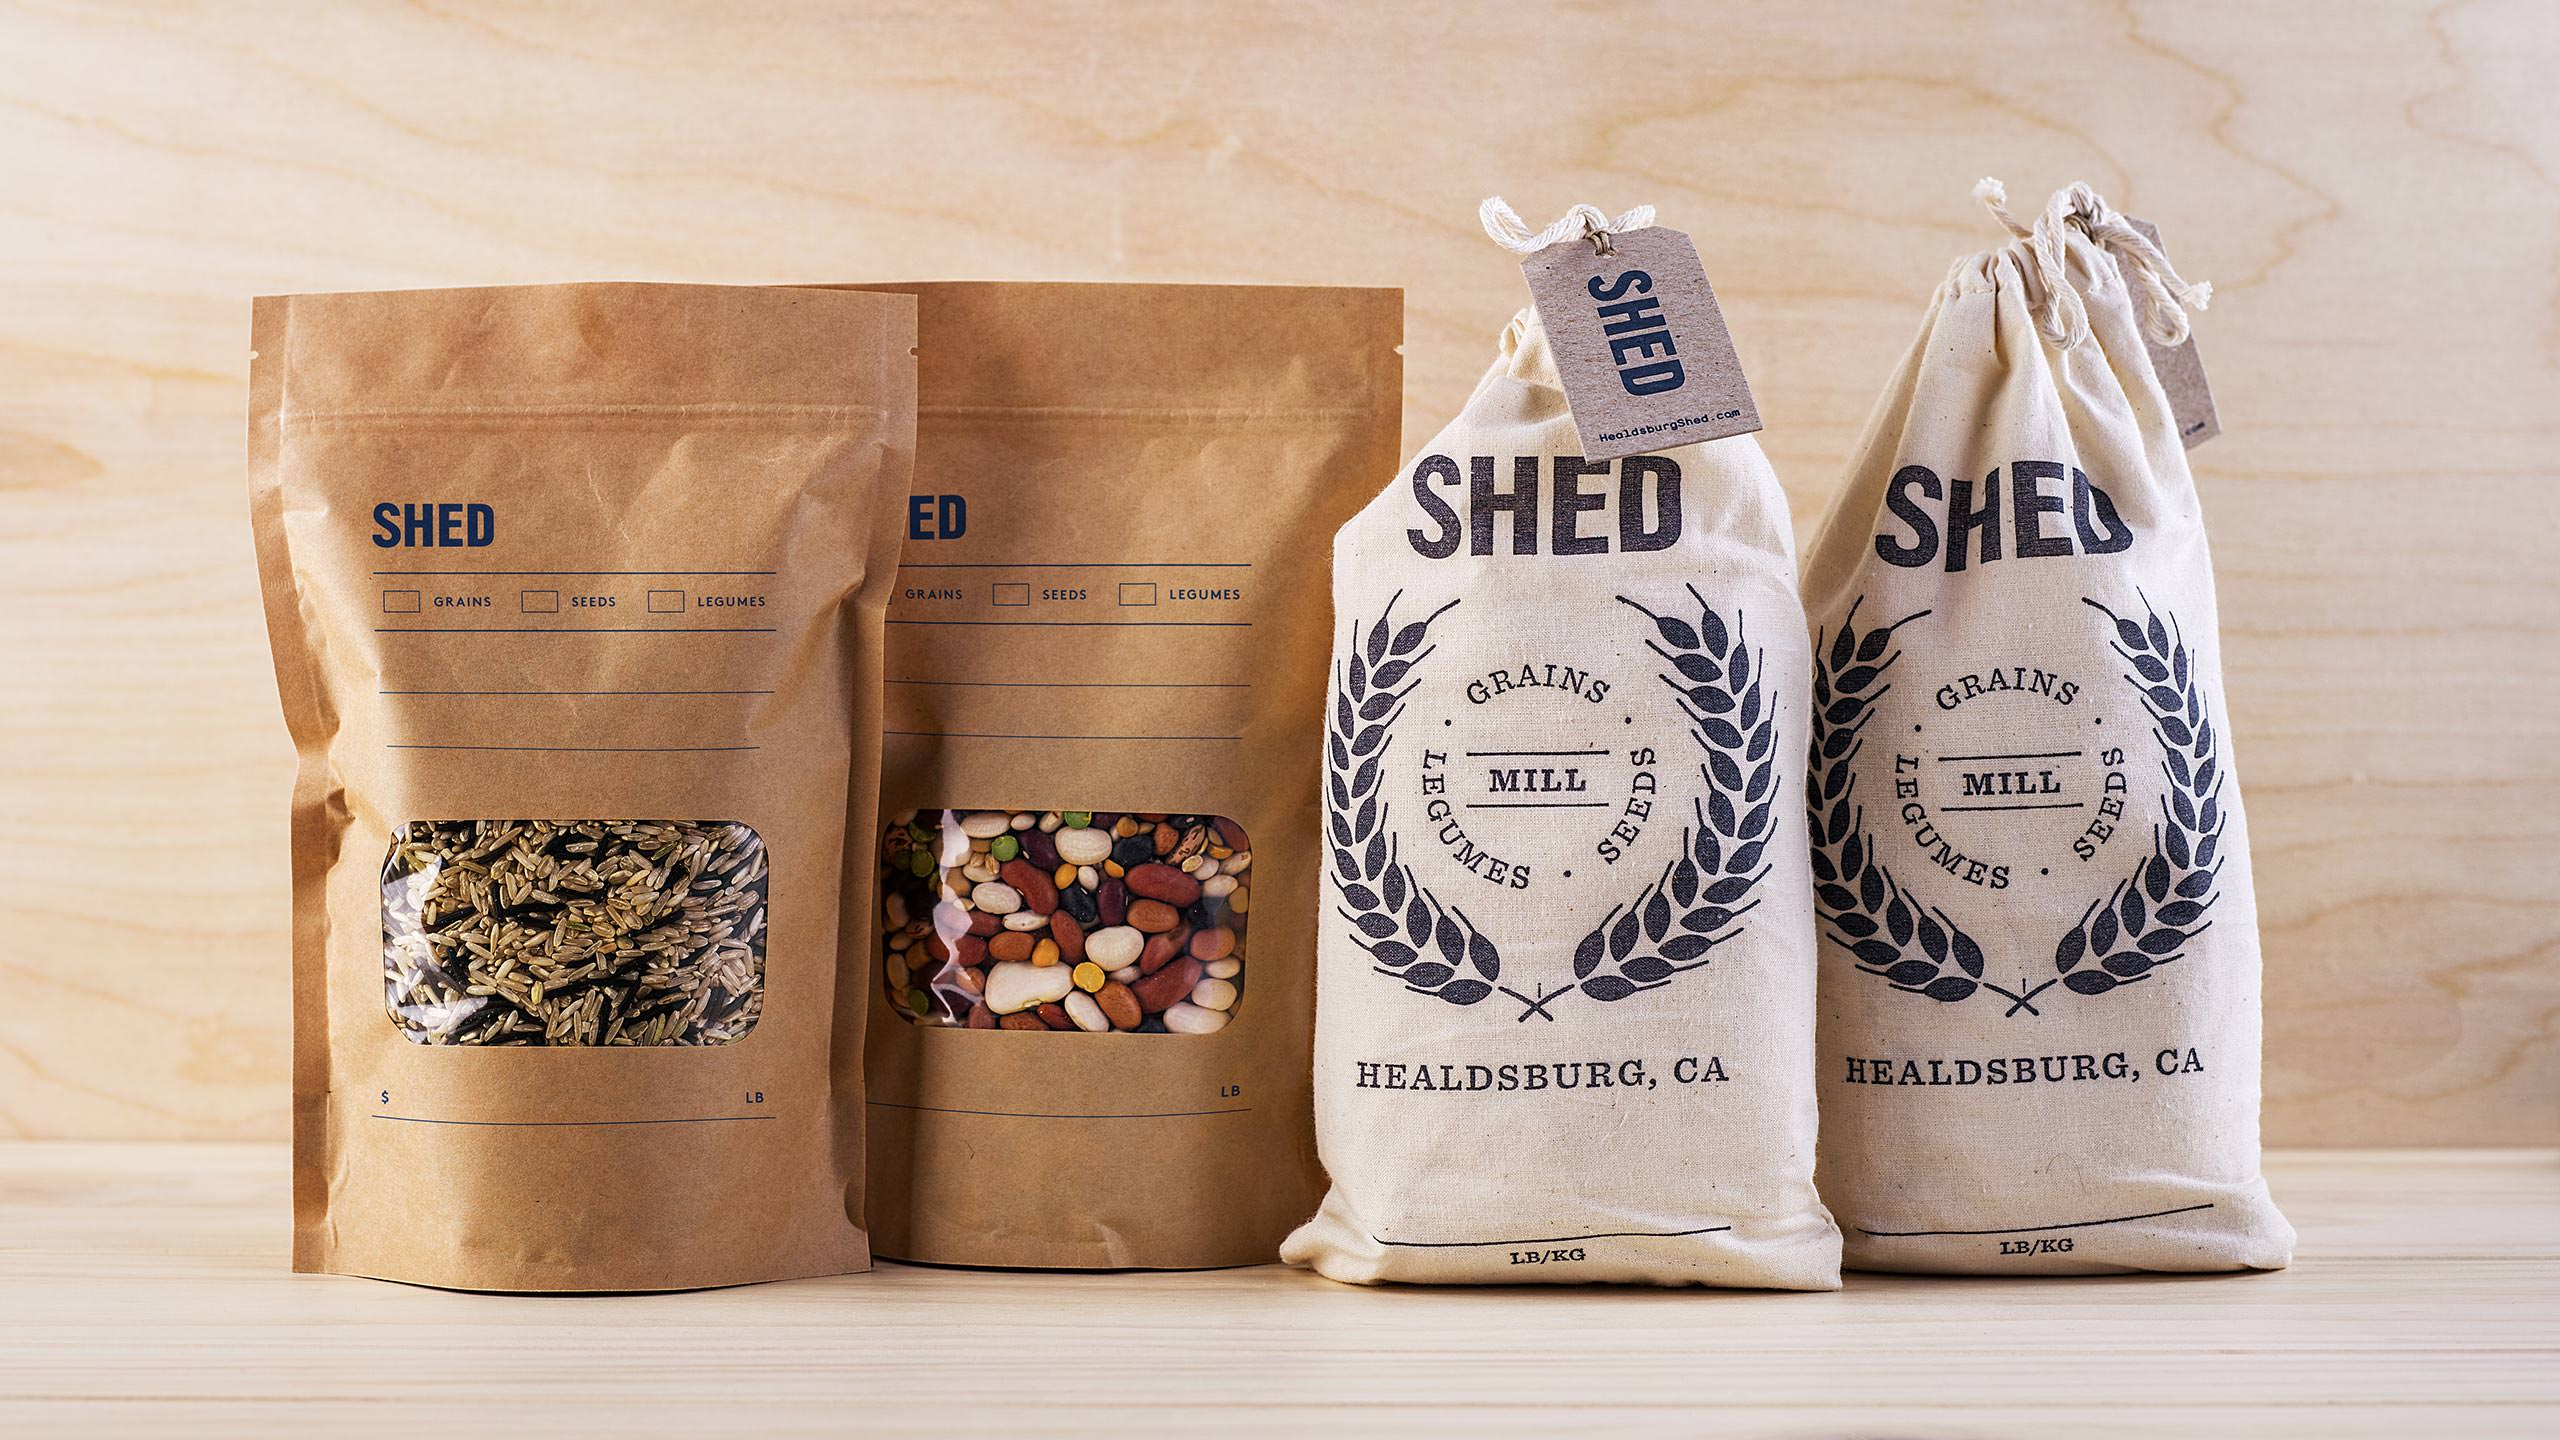 SHED Brand Packaging - Photography of Bags with Grains, Legumes and Seeds